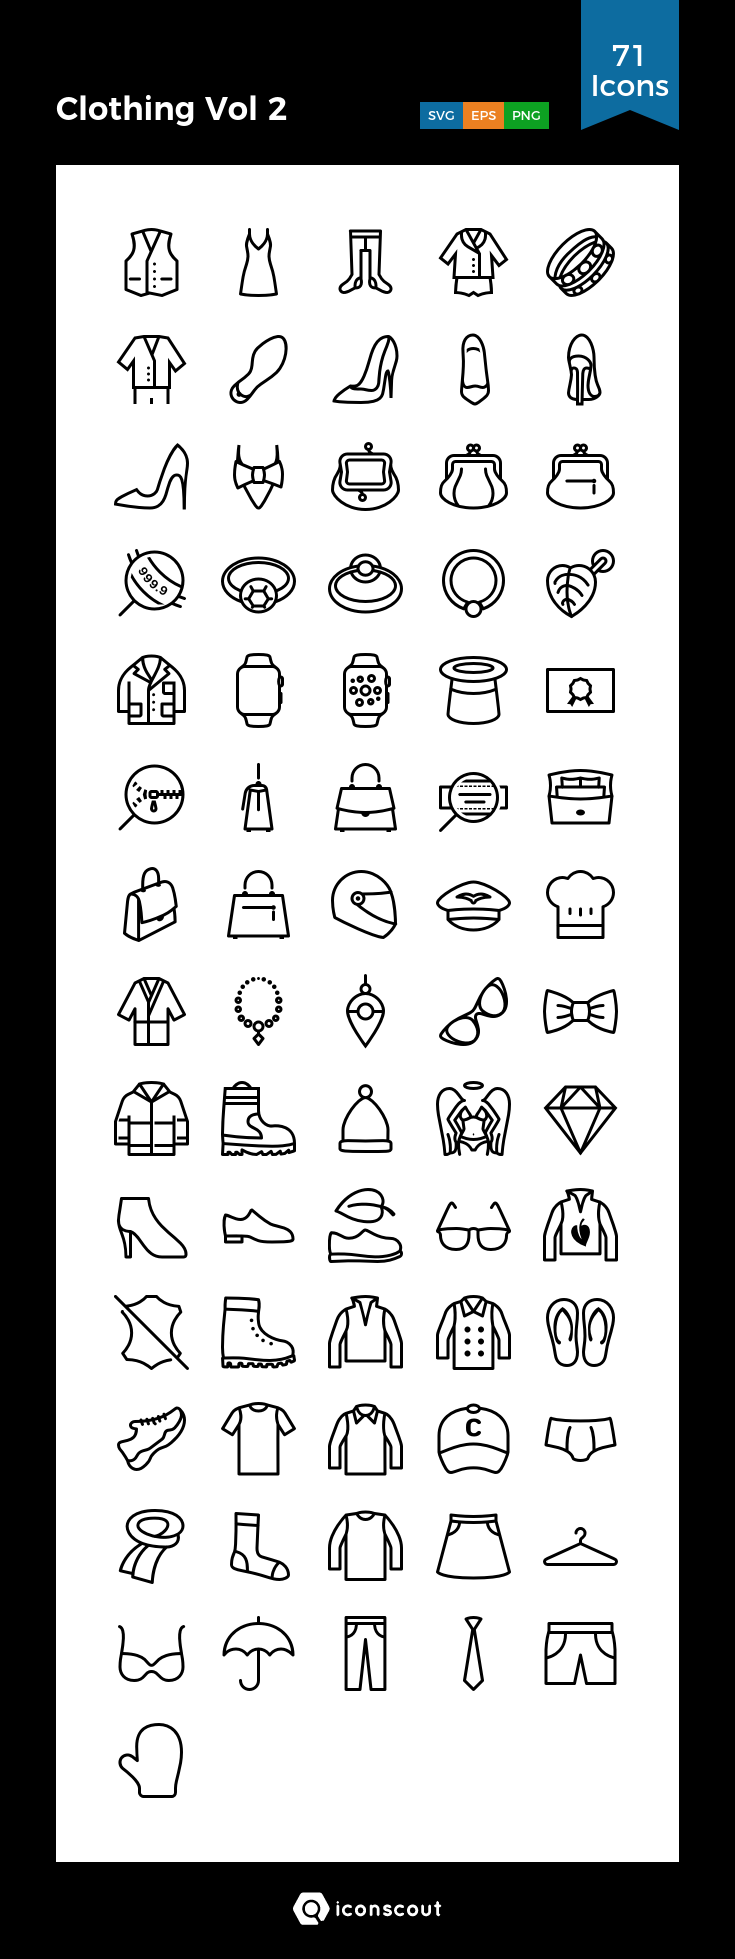 Download Clothing Vol 2 Icon Pack Available In Svg Png Eps Ai Icon Fonts Icon Sketch Notes Icon Pack